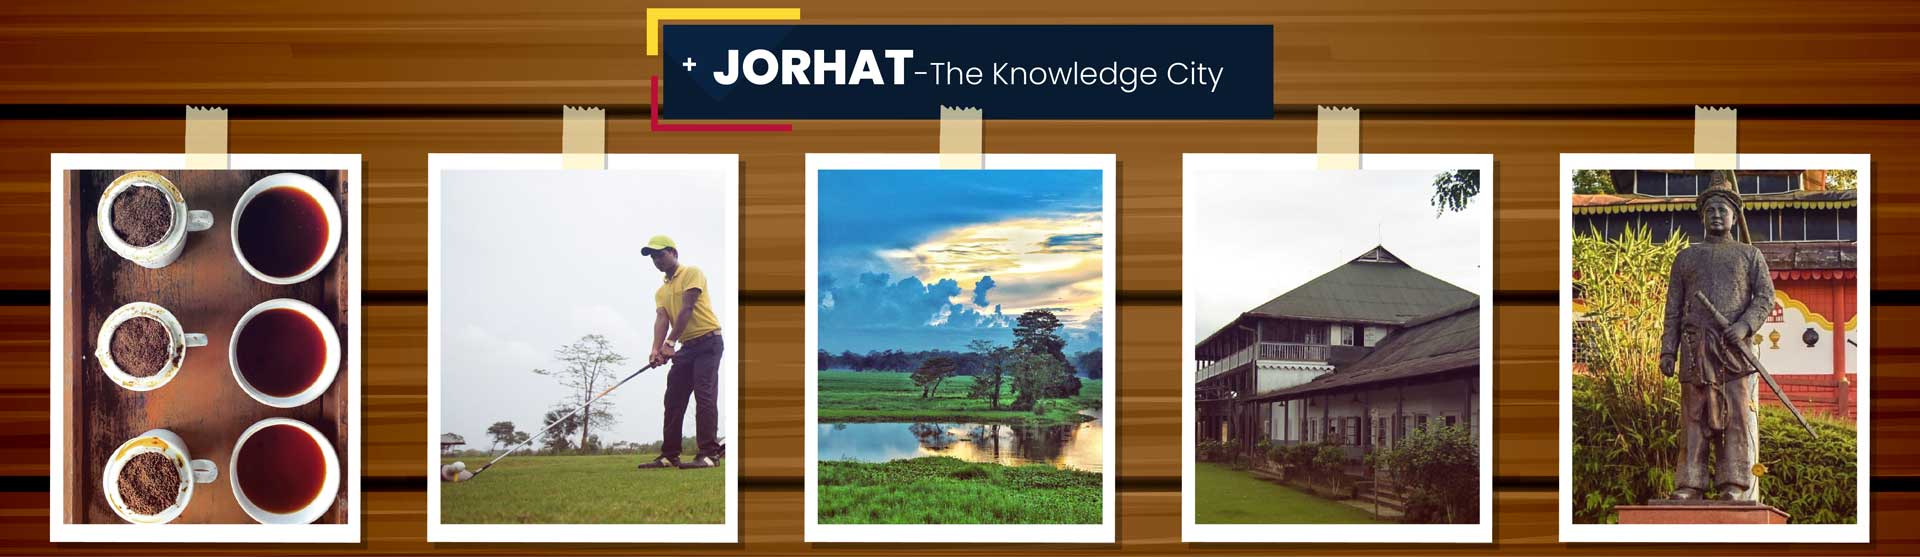 Jorhat - The Knowledge City